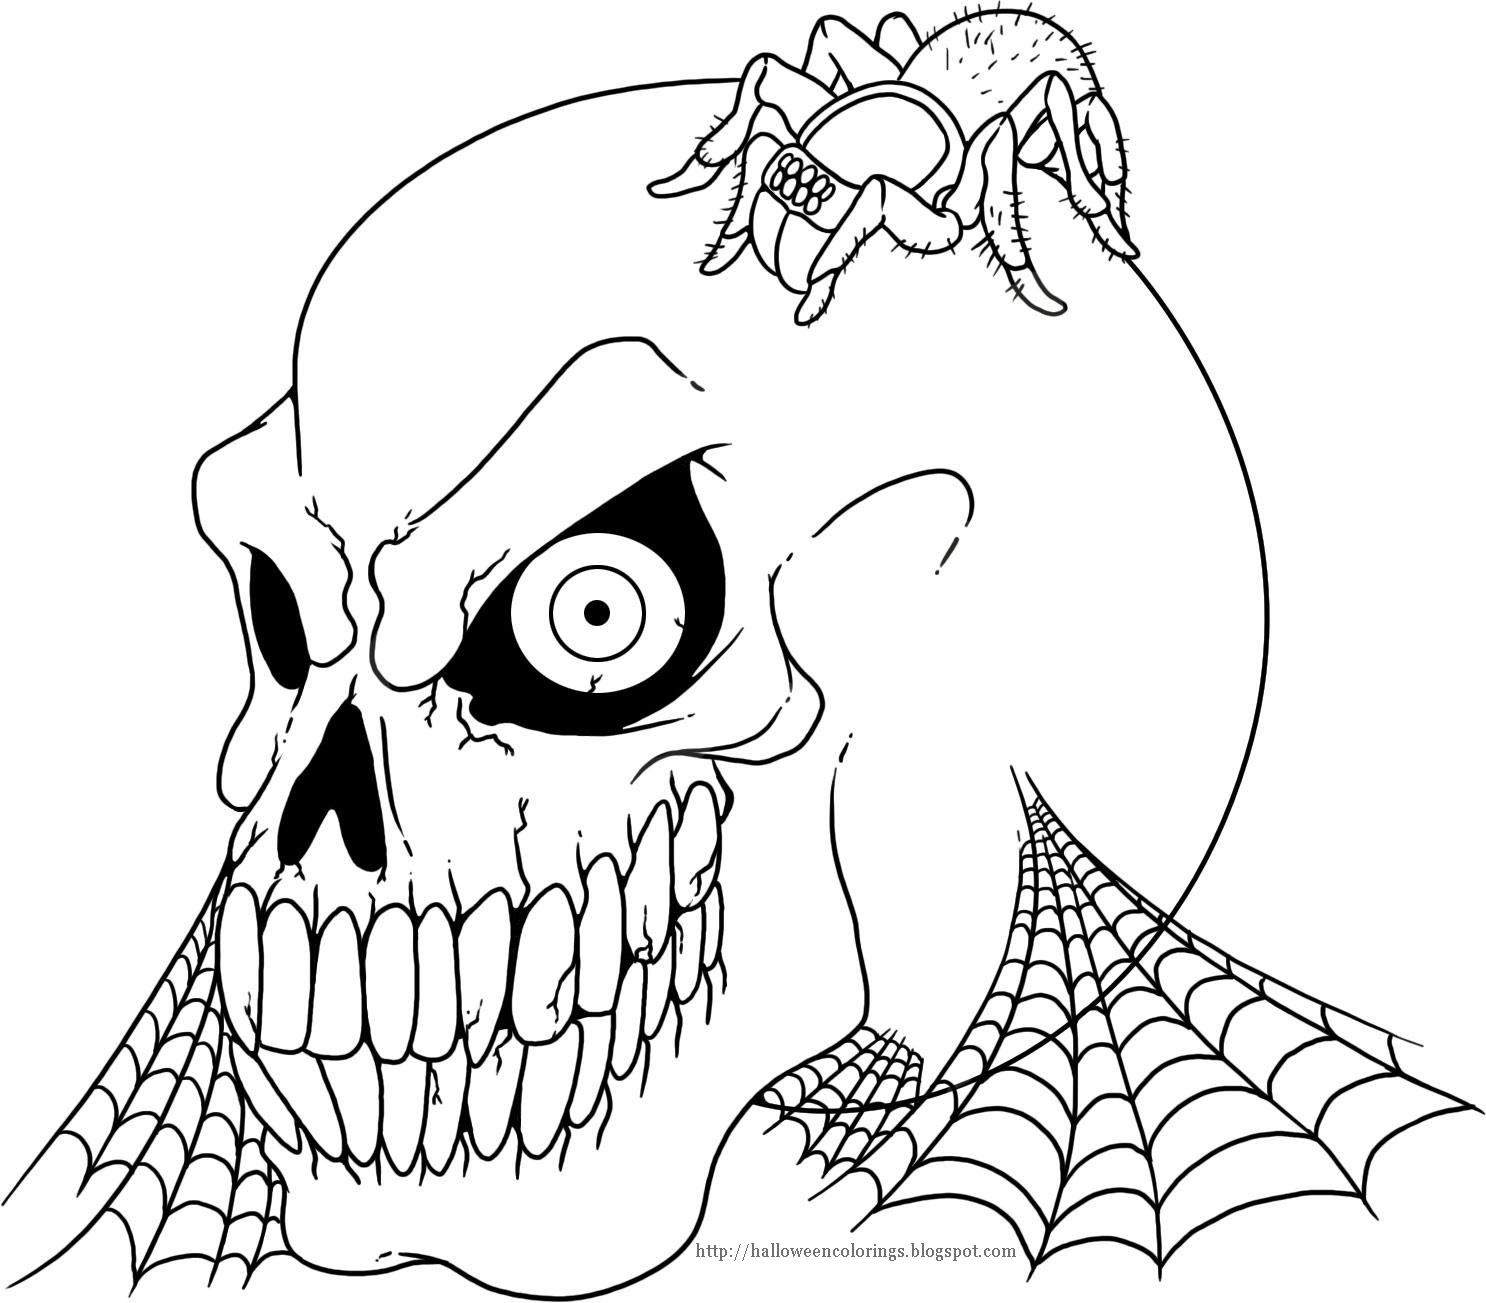 Scary Skull Coloring Pages Download Skull Coloring Pages Halloween Coloring Pages Halloween Coloring Pages Printable